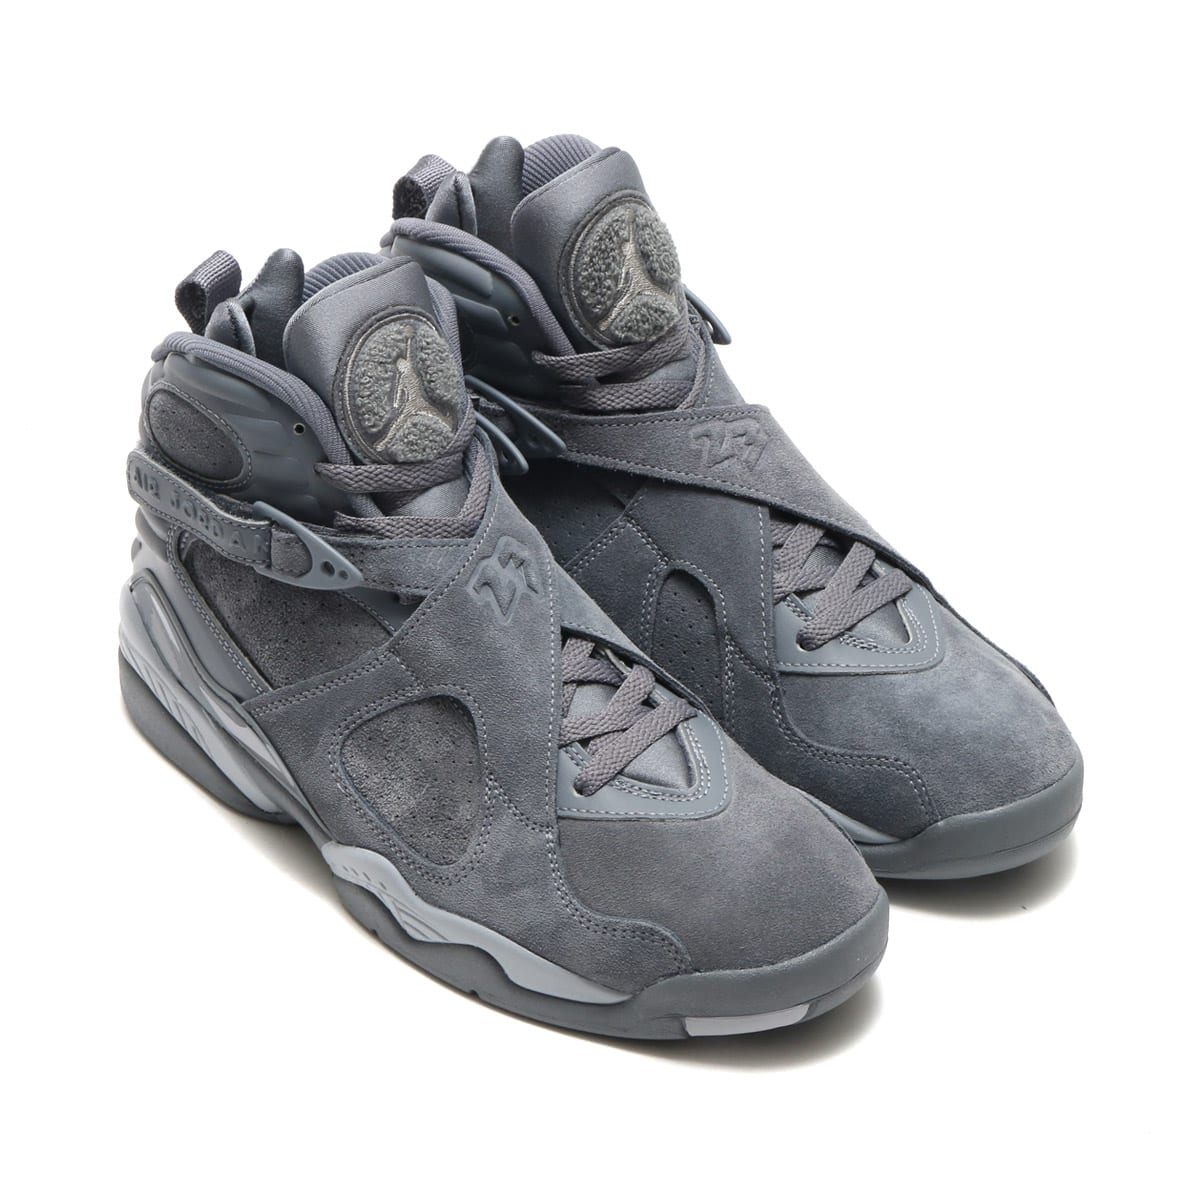 JORDAN BRAND AIR JORDAN 8 RETRO  COOL GREY/WOLF GREY-COOL GREY_photo_large